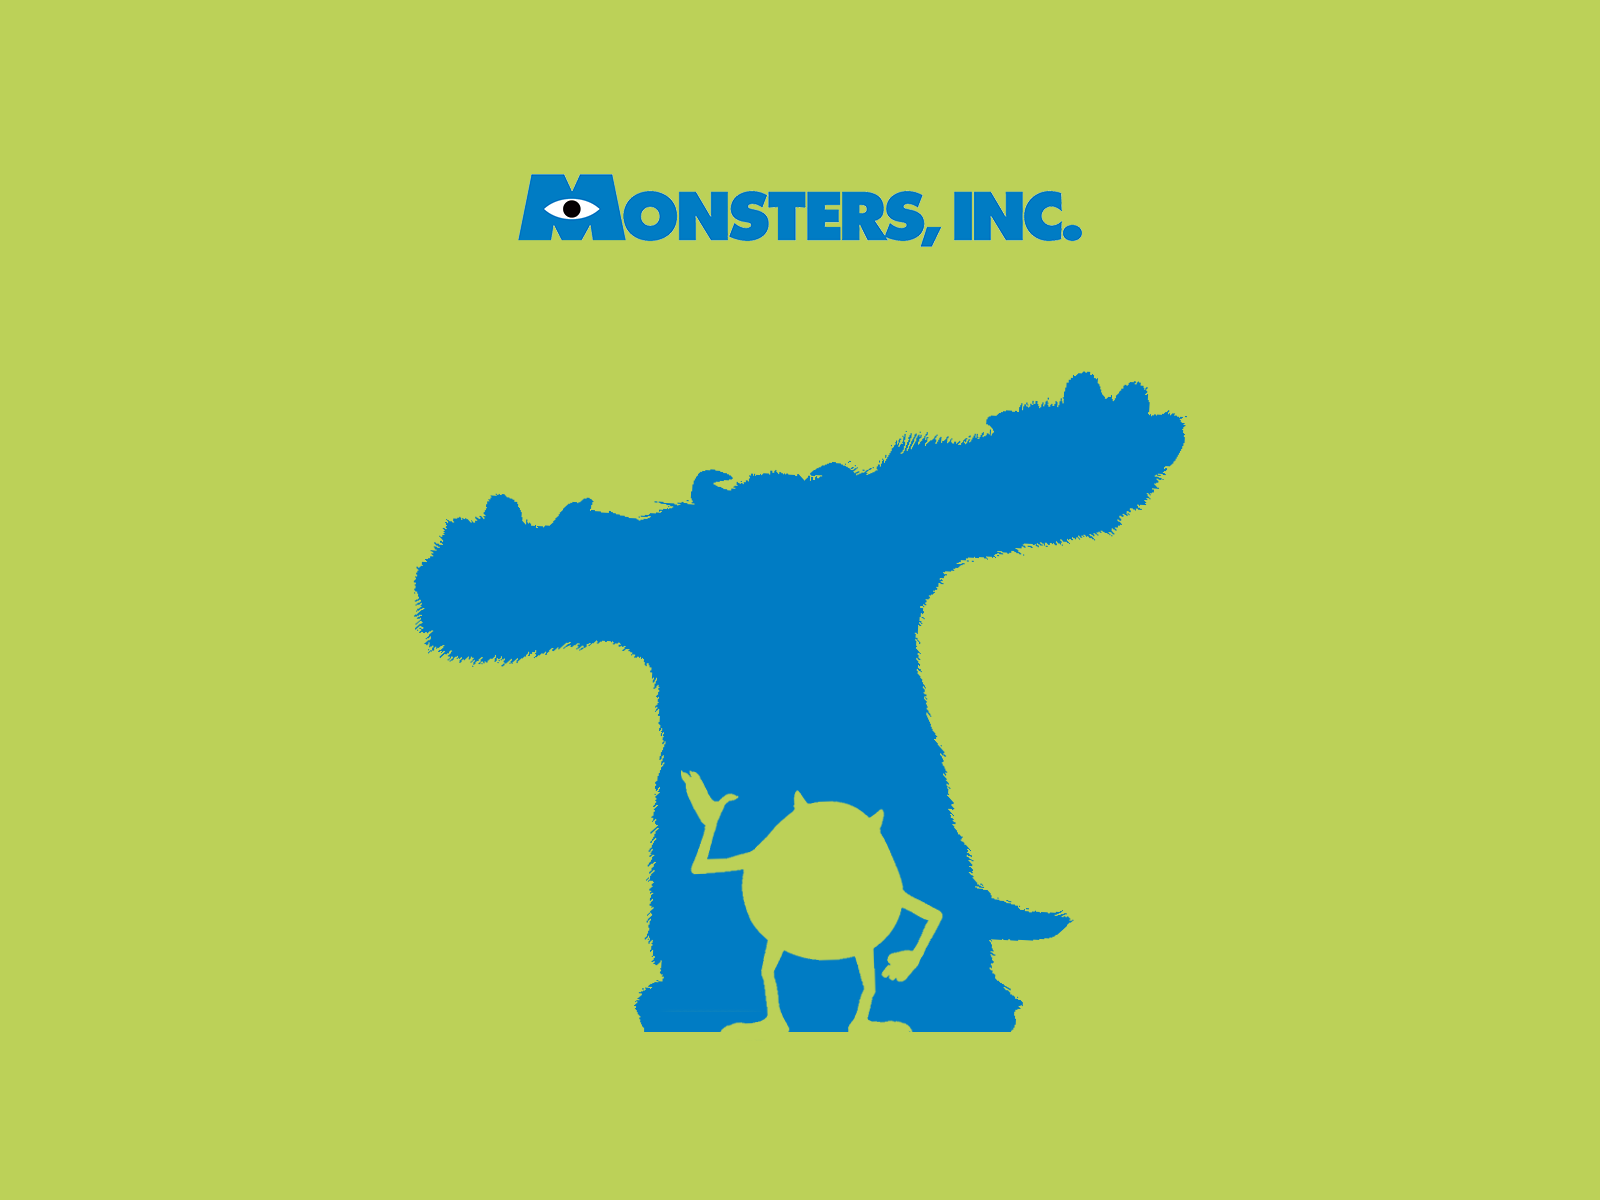 1600x1200 Monster Inc Widescreen Image | Fine Pics, v.43